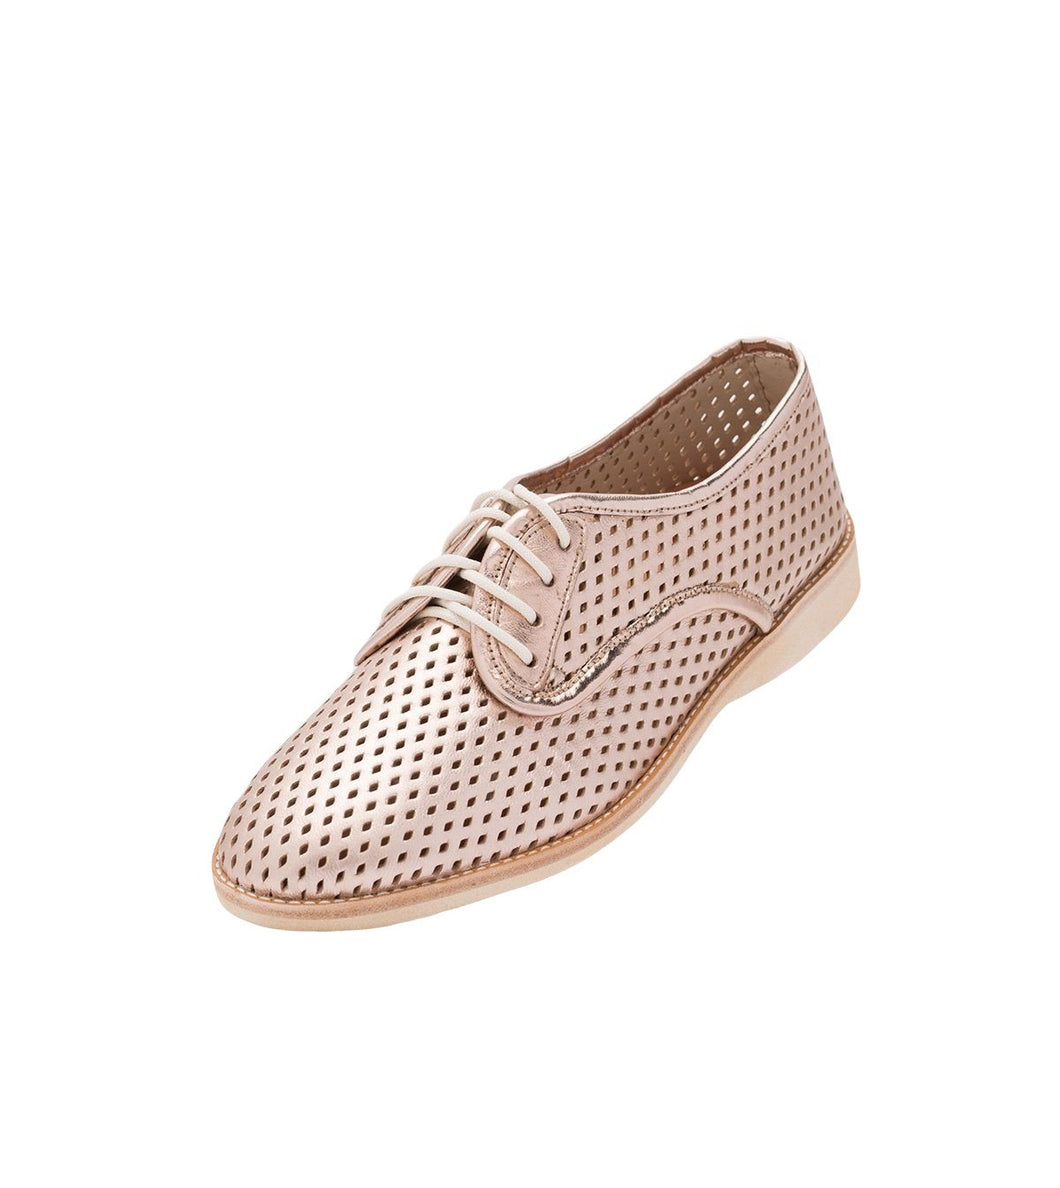 Rollie Derby Punch Rose Gold Shoes - Global Free Style